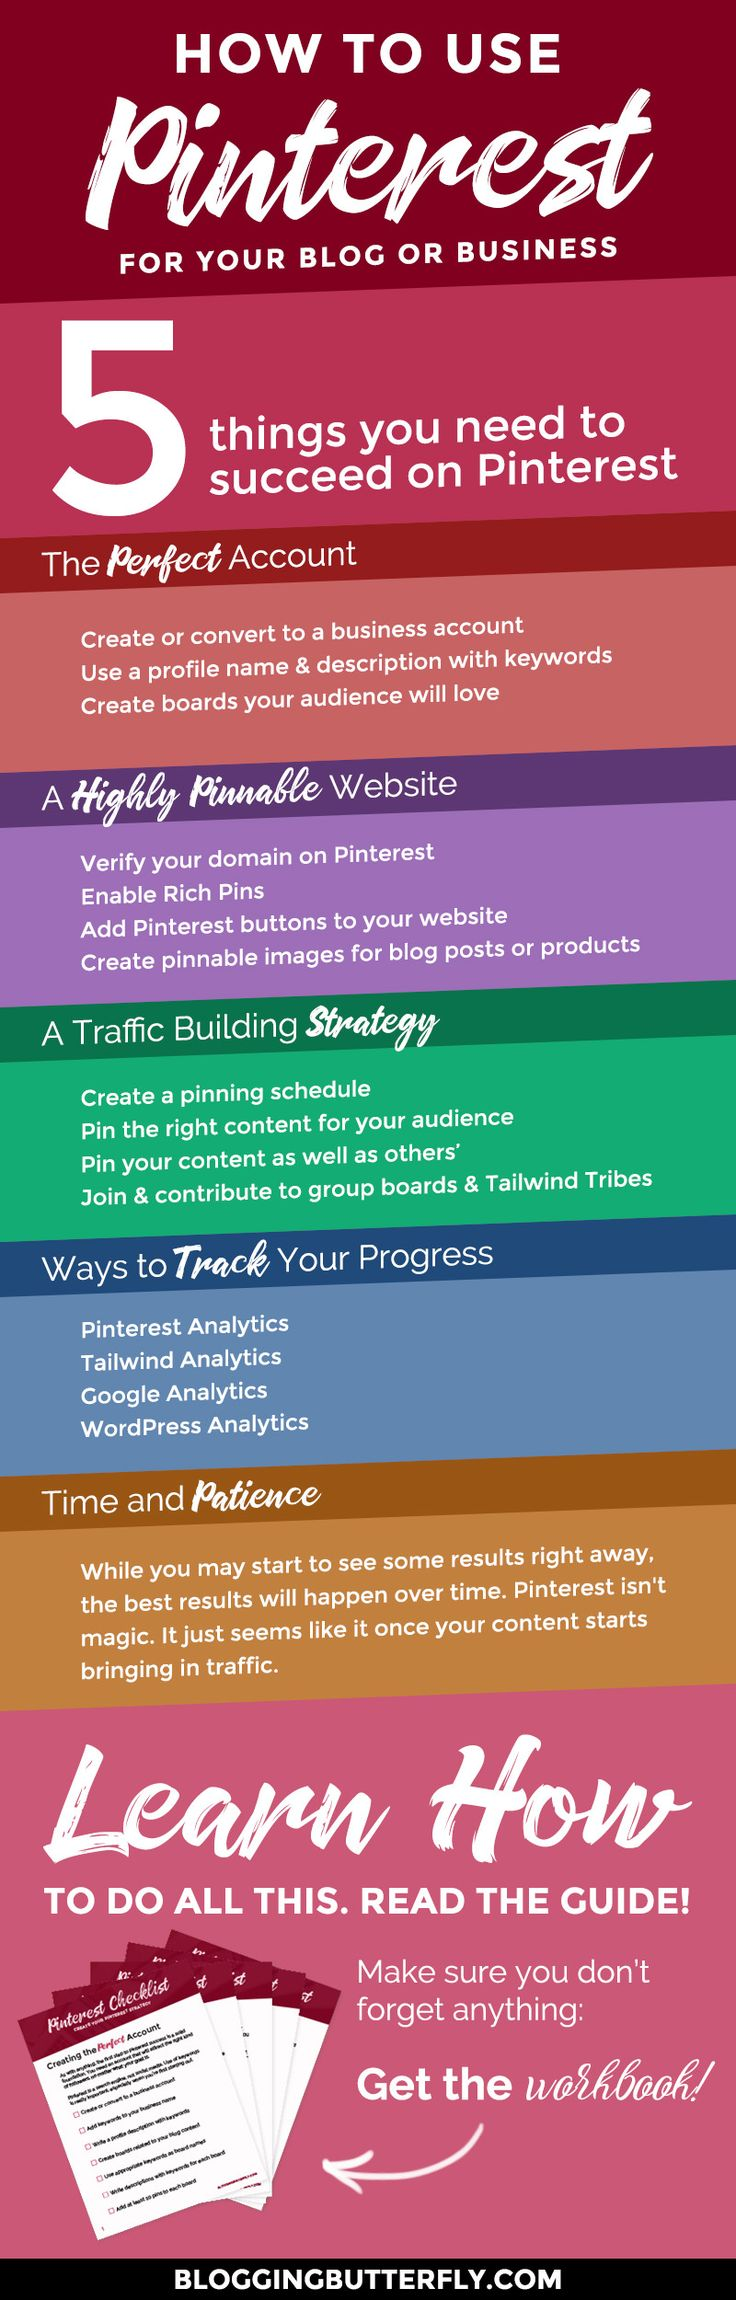 Pinterest for Bloggers: How to Use Pinterest to Drive Traffic to Your BlogElizabeth Atwood of Rock-A-Bye Parents (Parenting & Homemaking Tips for Busy Working Moms)